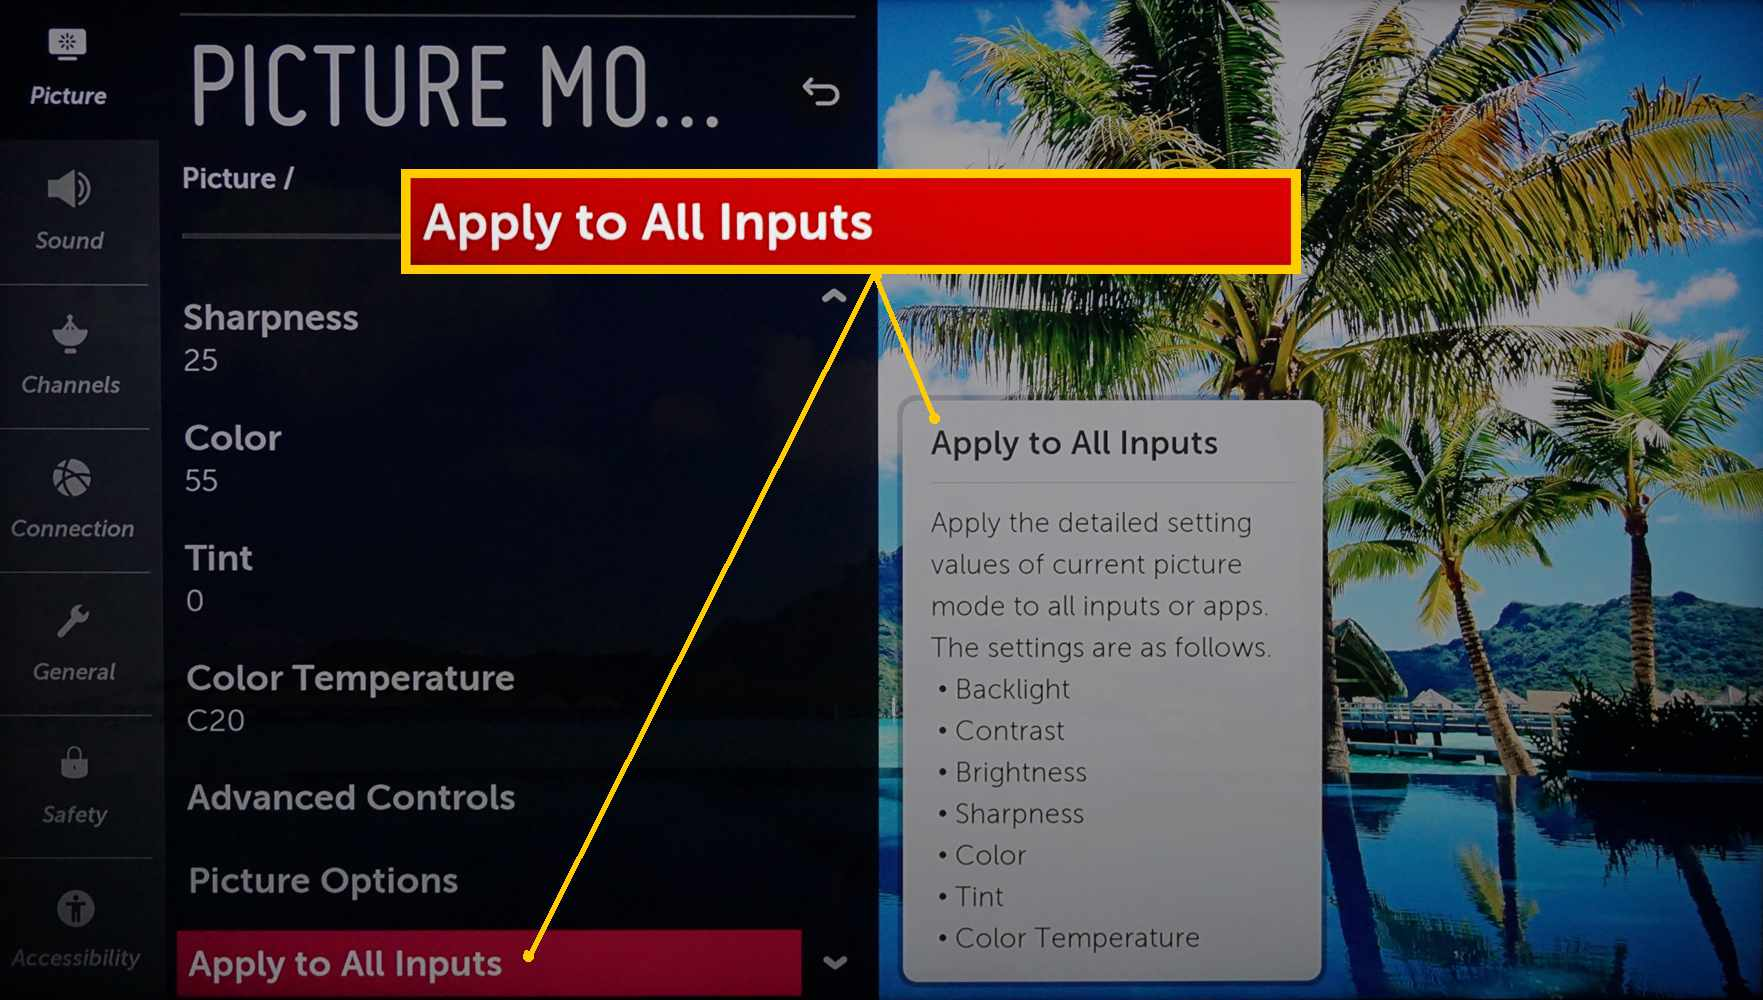 LG 4K Ultra HD TV – Apply Picture Settings to All Inputs